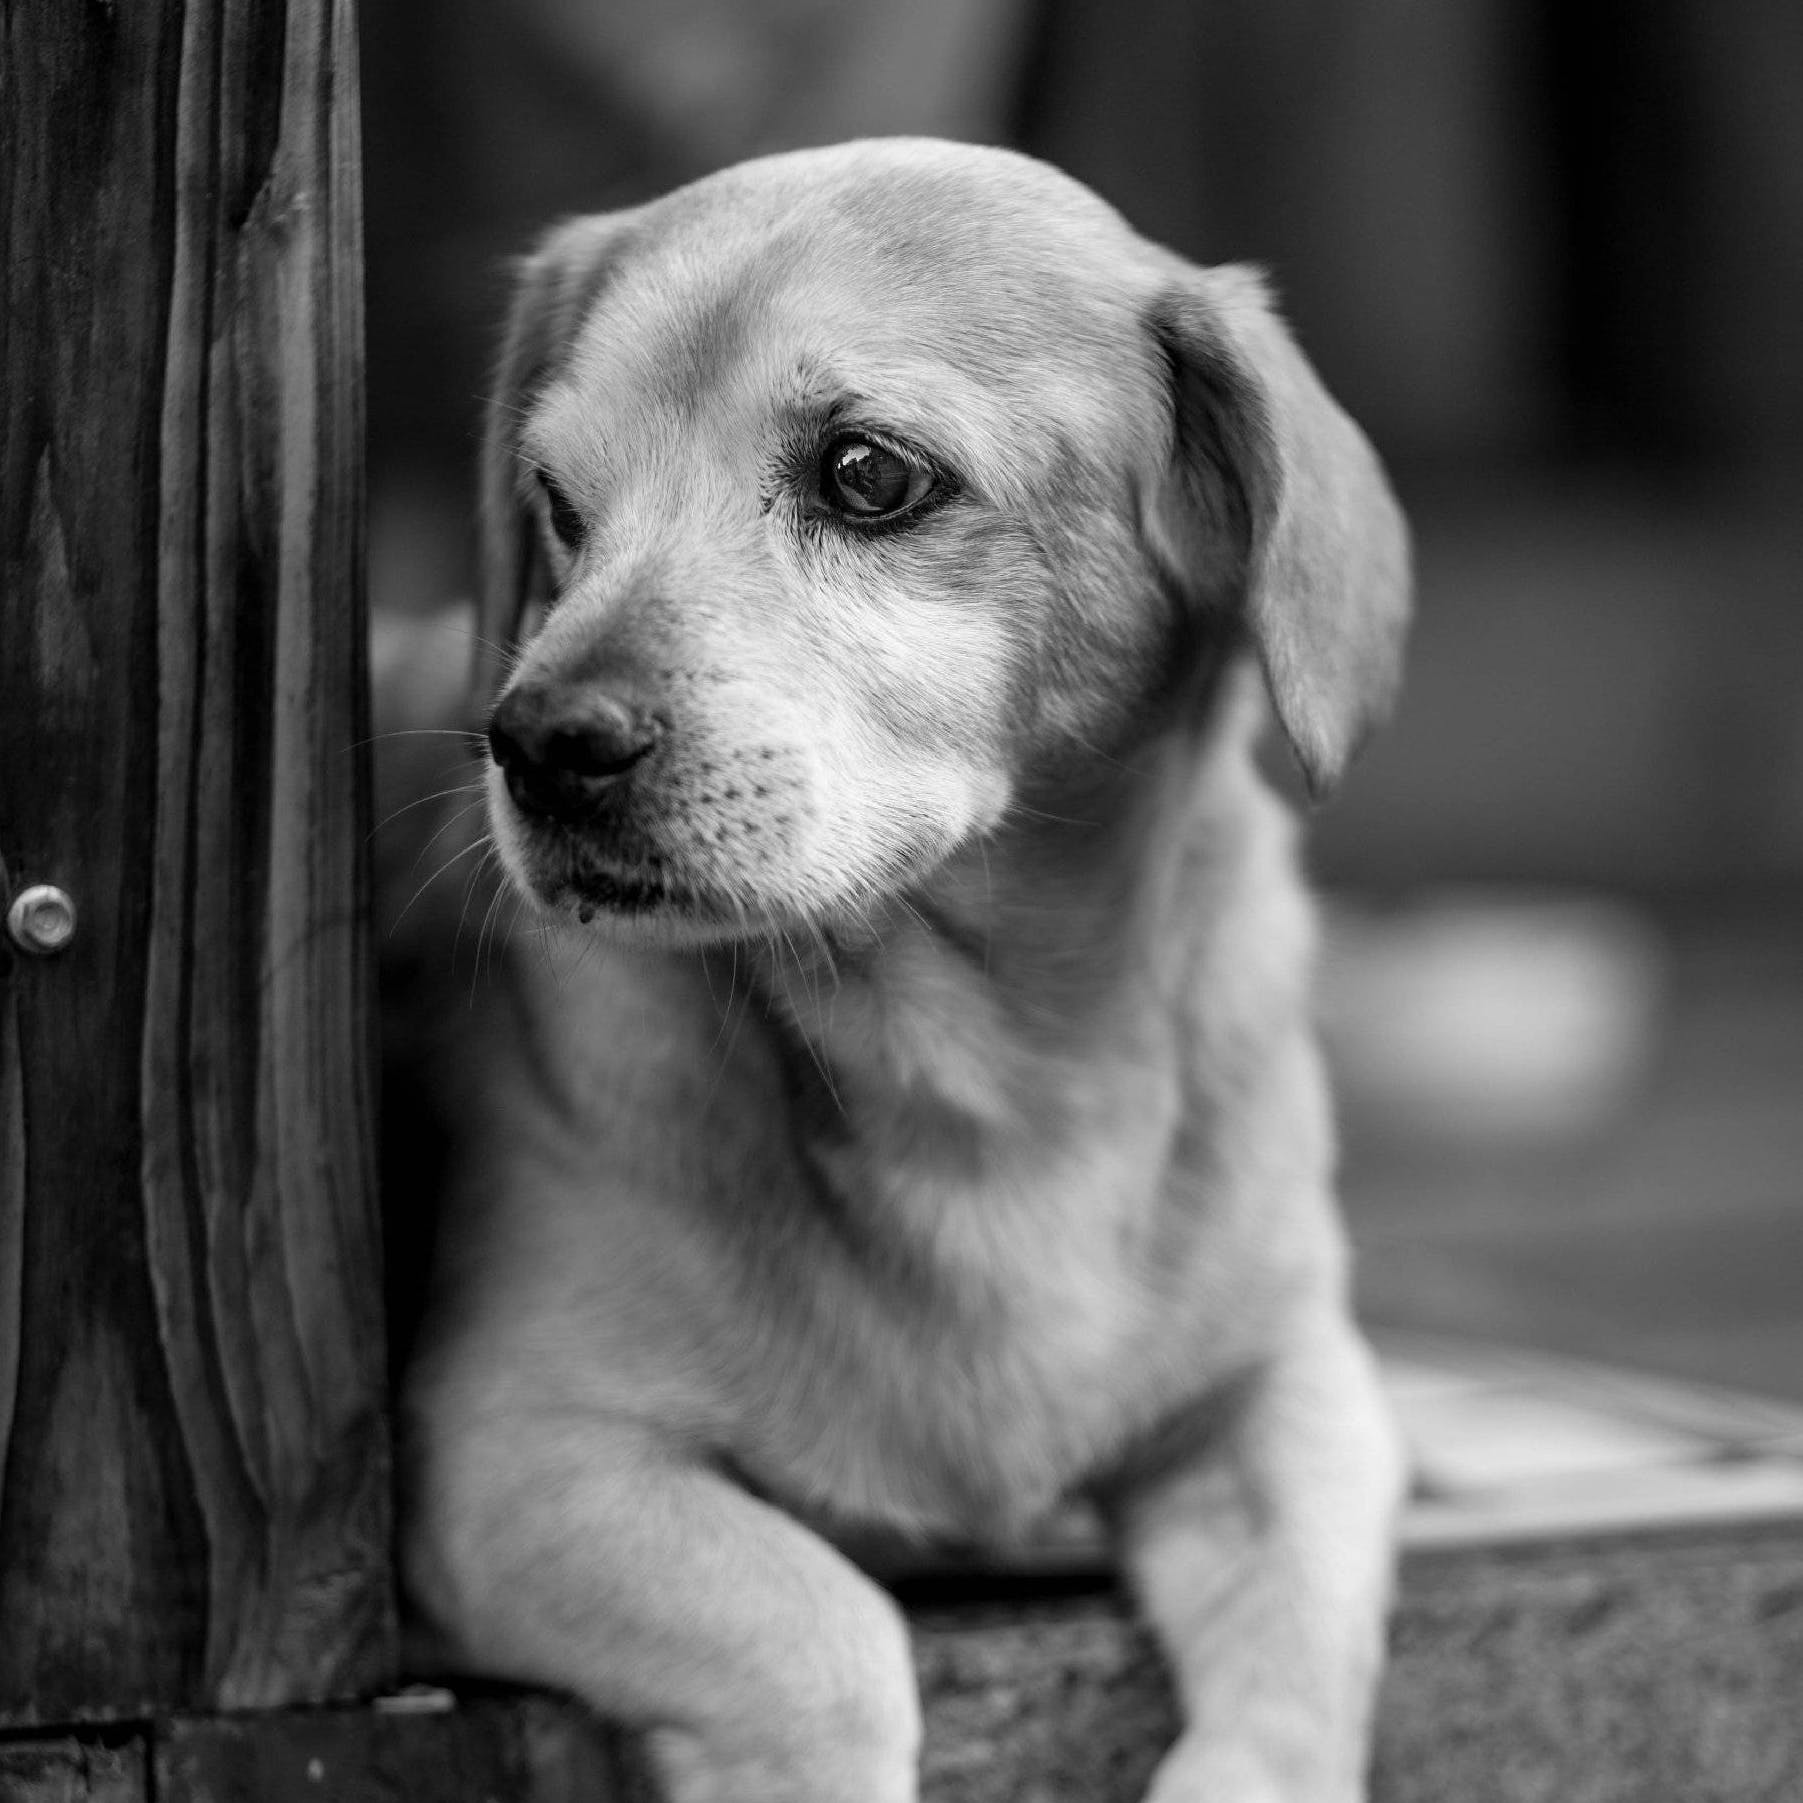 Grayscale Photography of Short-coated Puppy